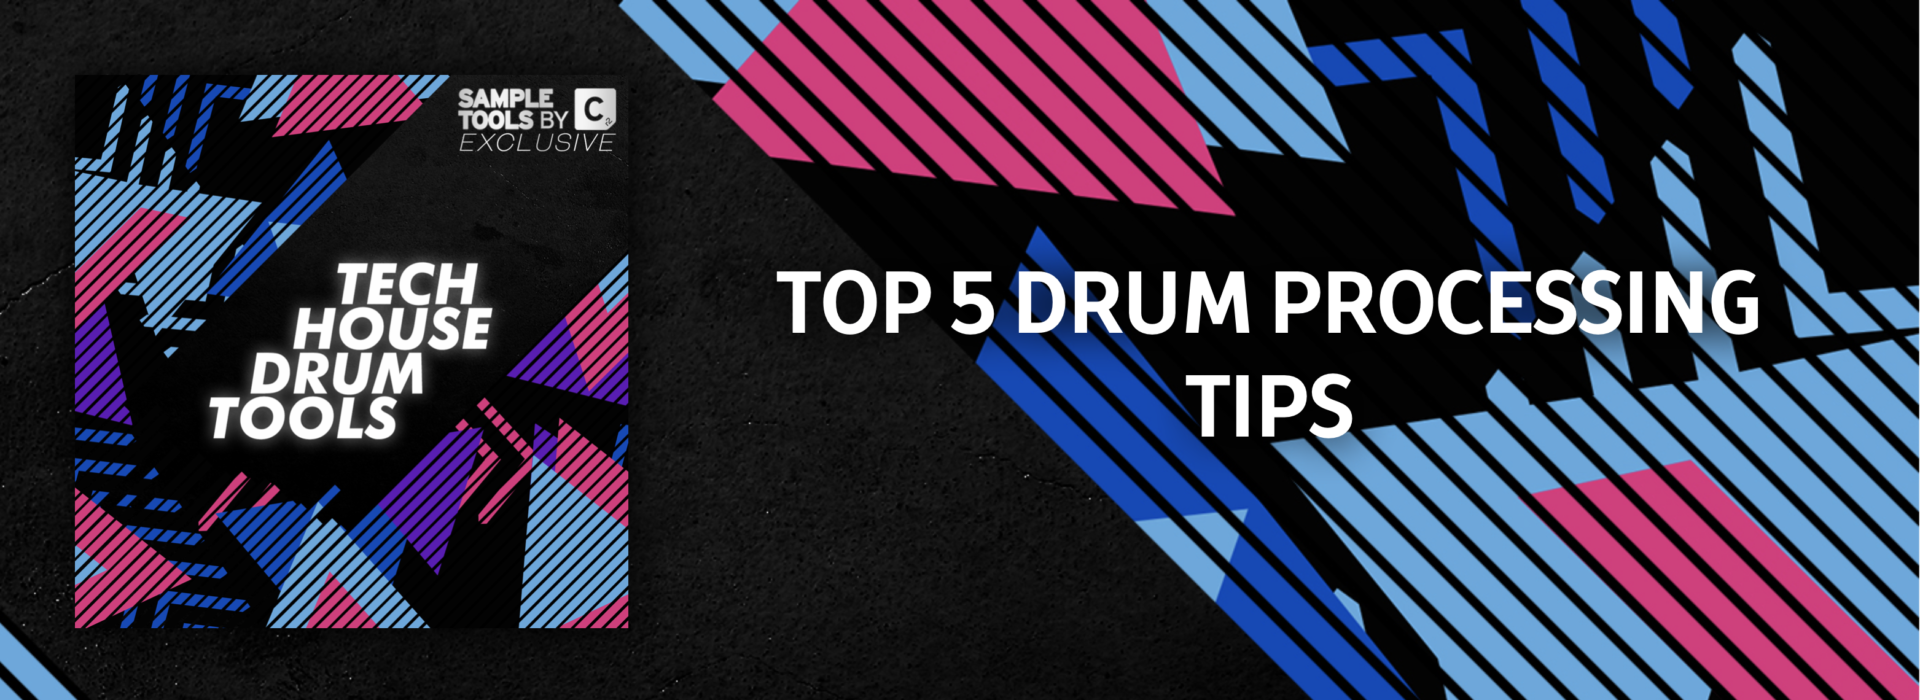 Top 5 Drum Processing Tips